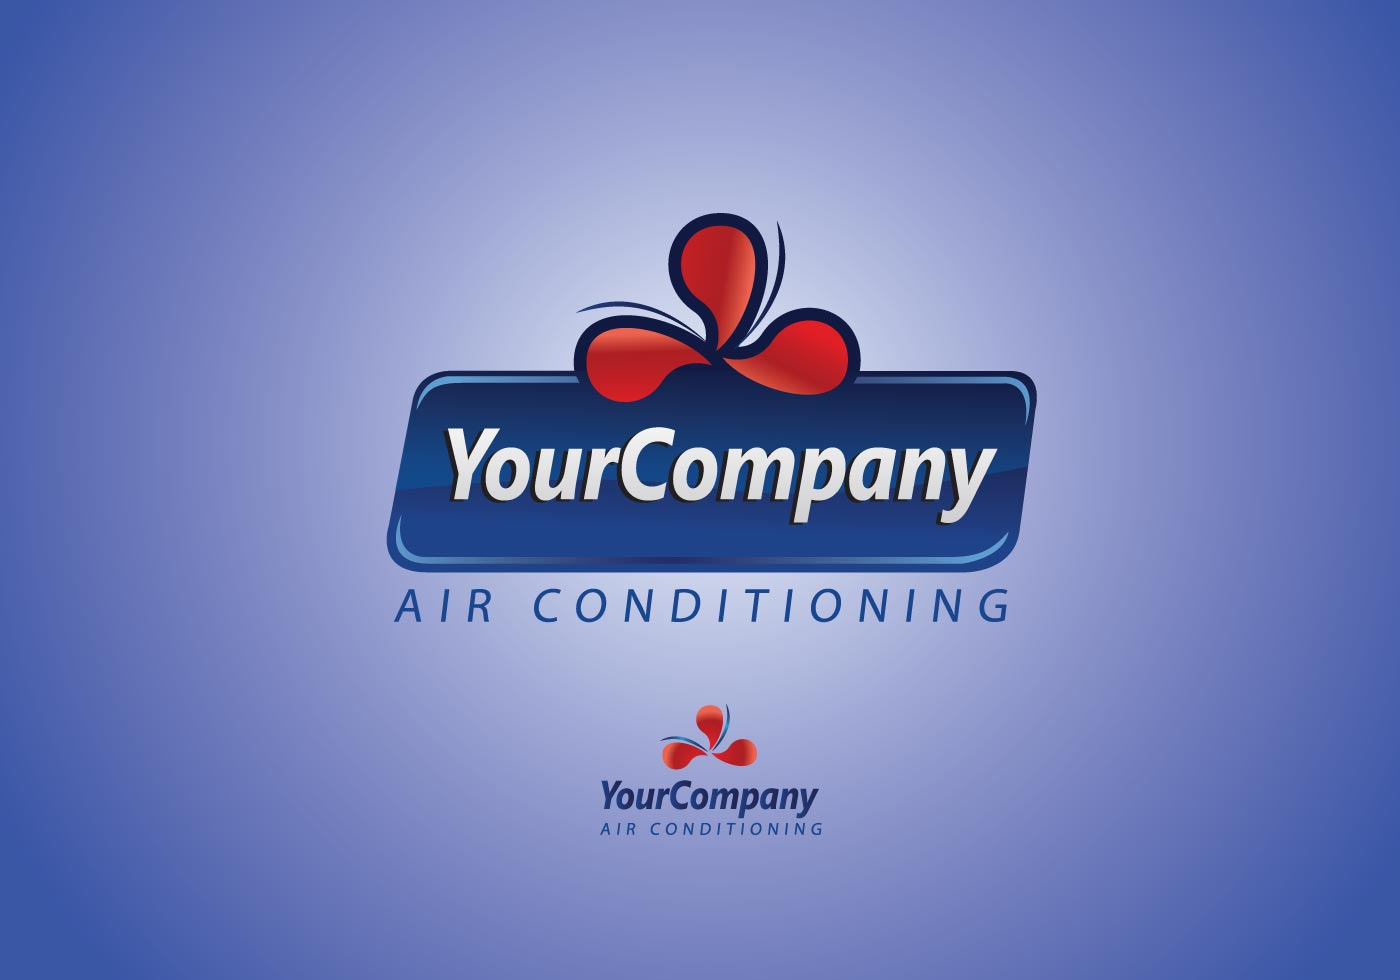 Heating And Air Conditioning 4682 Free Downloads